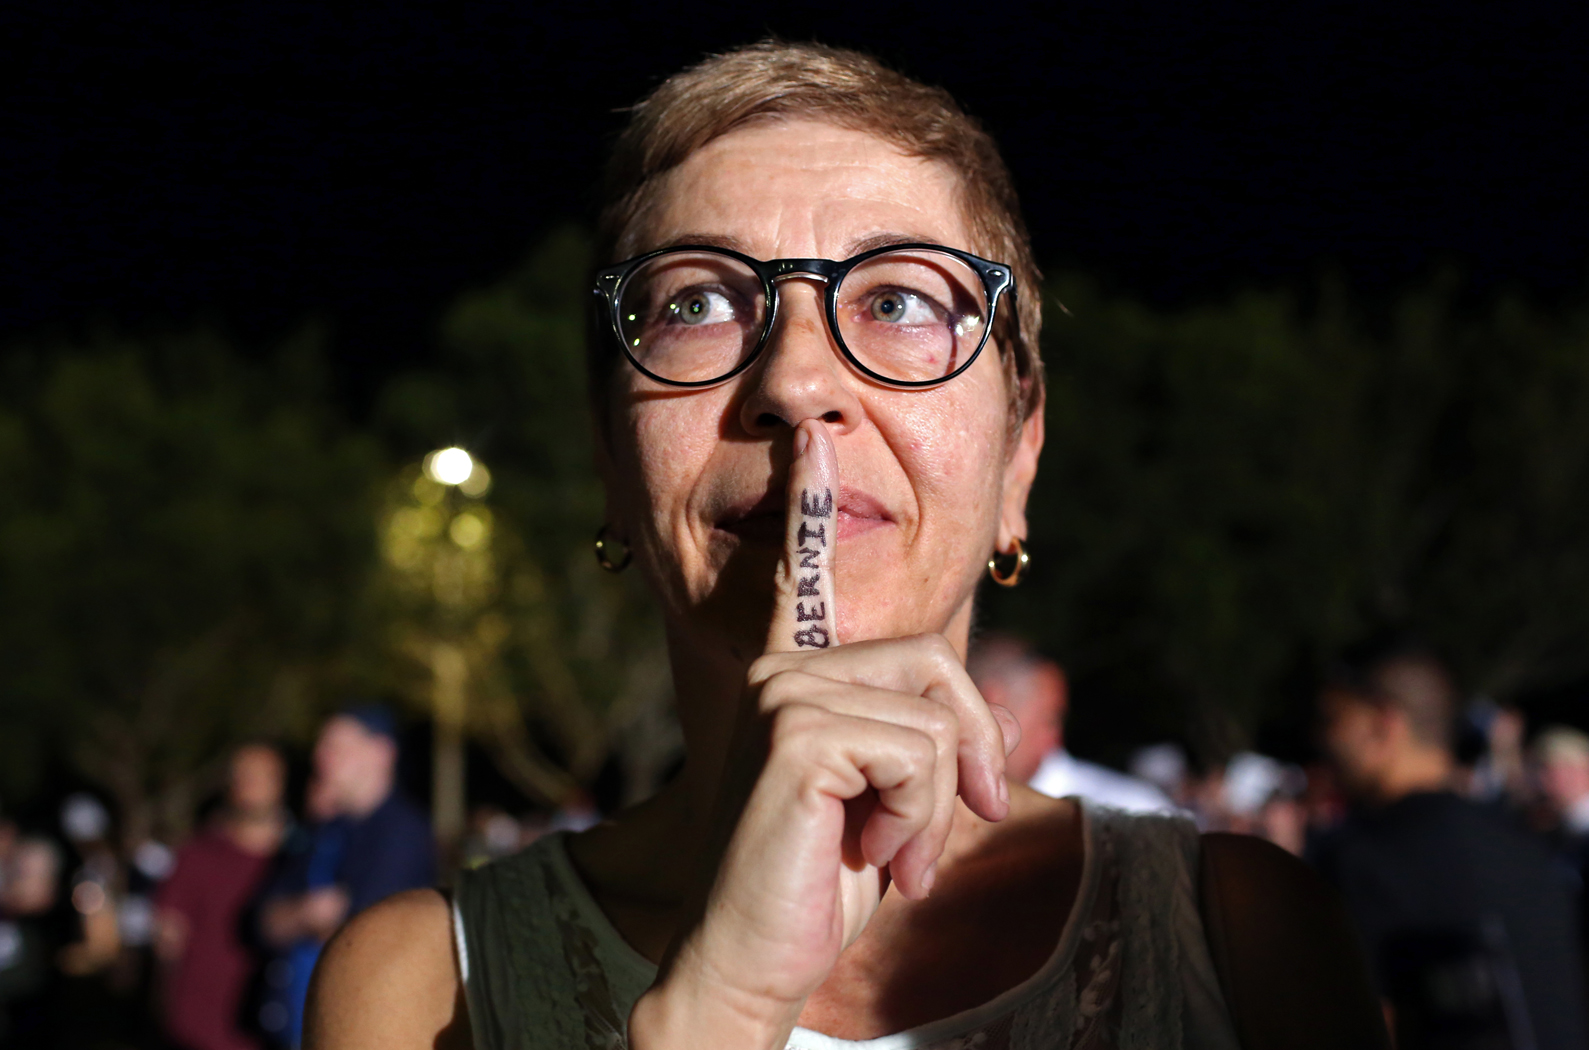 Pam Becker, 51, poses for a portrait with the name of U.S. Presidential candidate Bernie Sanders (I-VT) written on her finger at a rally for candidate Donald Trump (R-NY) at Sunset Cove Amphitheater in Boca Raton, FL, on March 13, 2016. Becker, a Democrat, says of her attendance to a Trump rally: {quote}It's hard to argue against someone if I don't have the knowledge. Simply calling people names is not an argument.{quote} Photo by: Yana Paskova